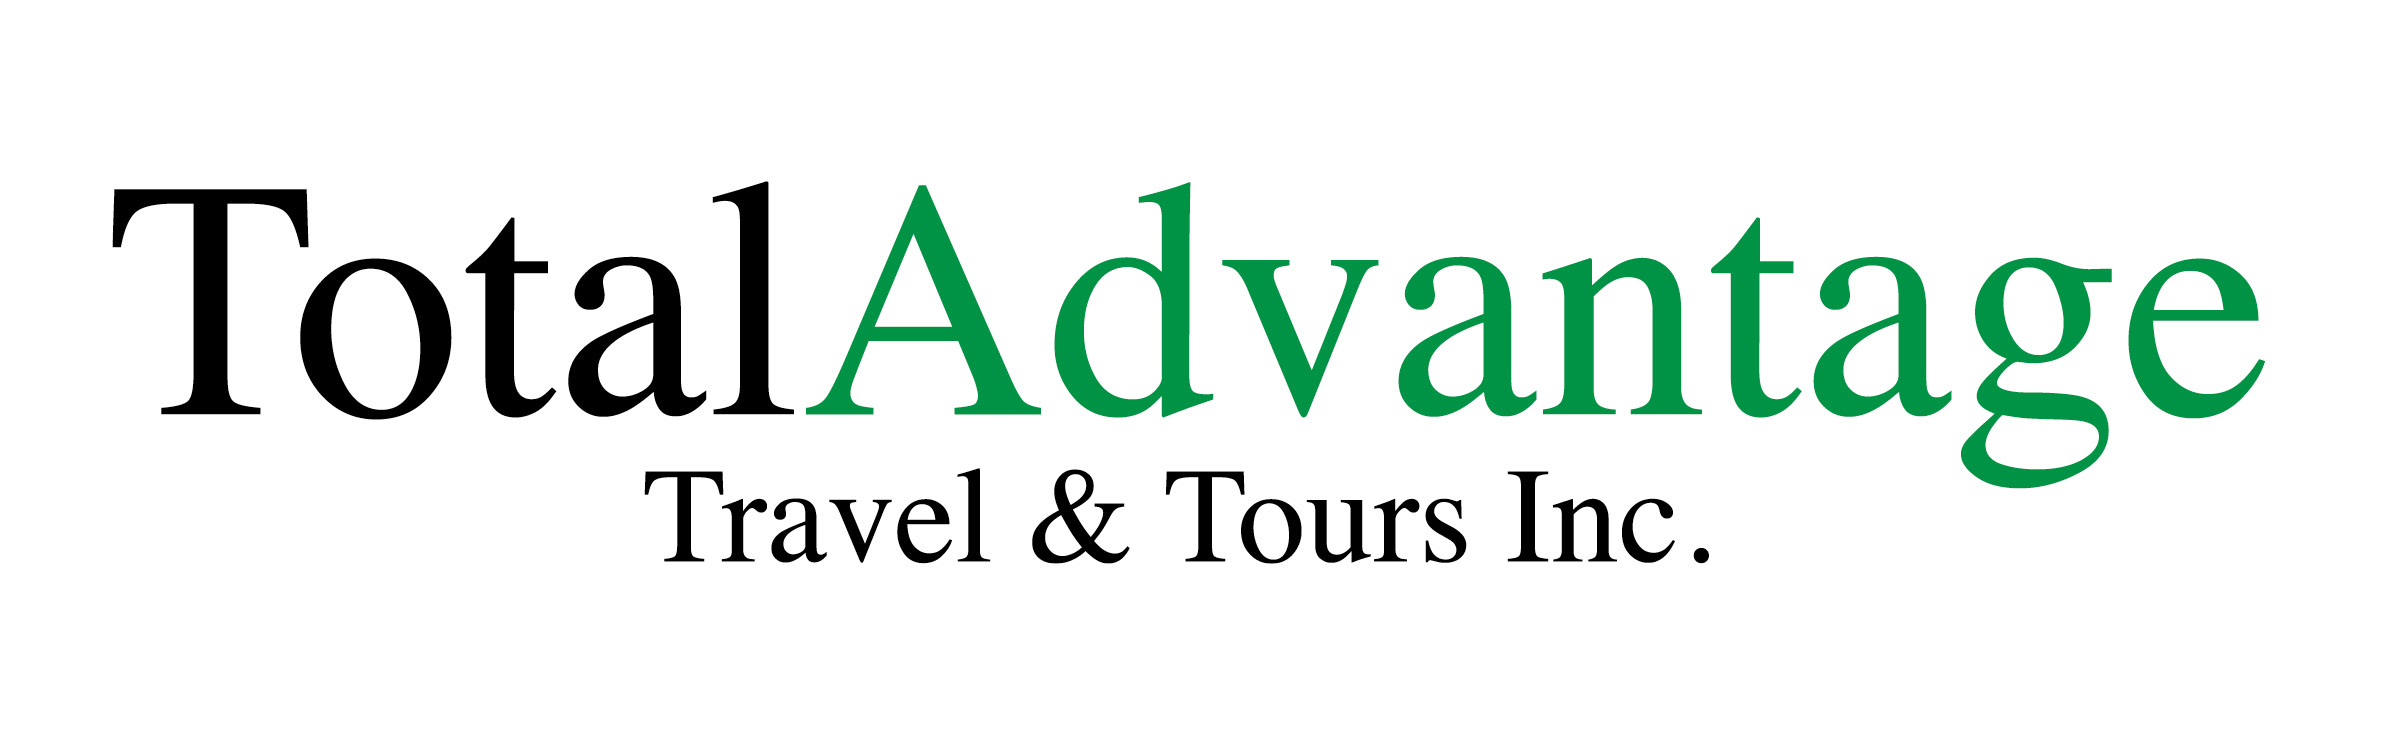 Total Advantage Travel & Torus, Inc.